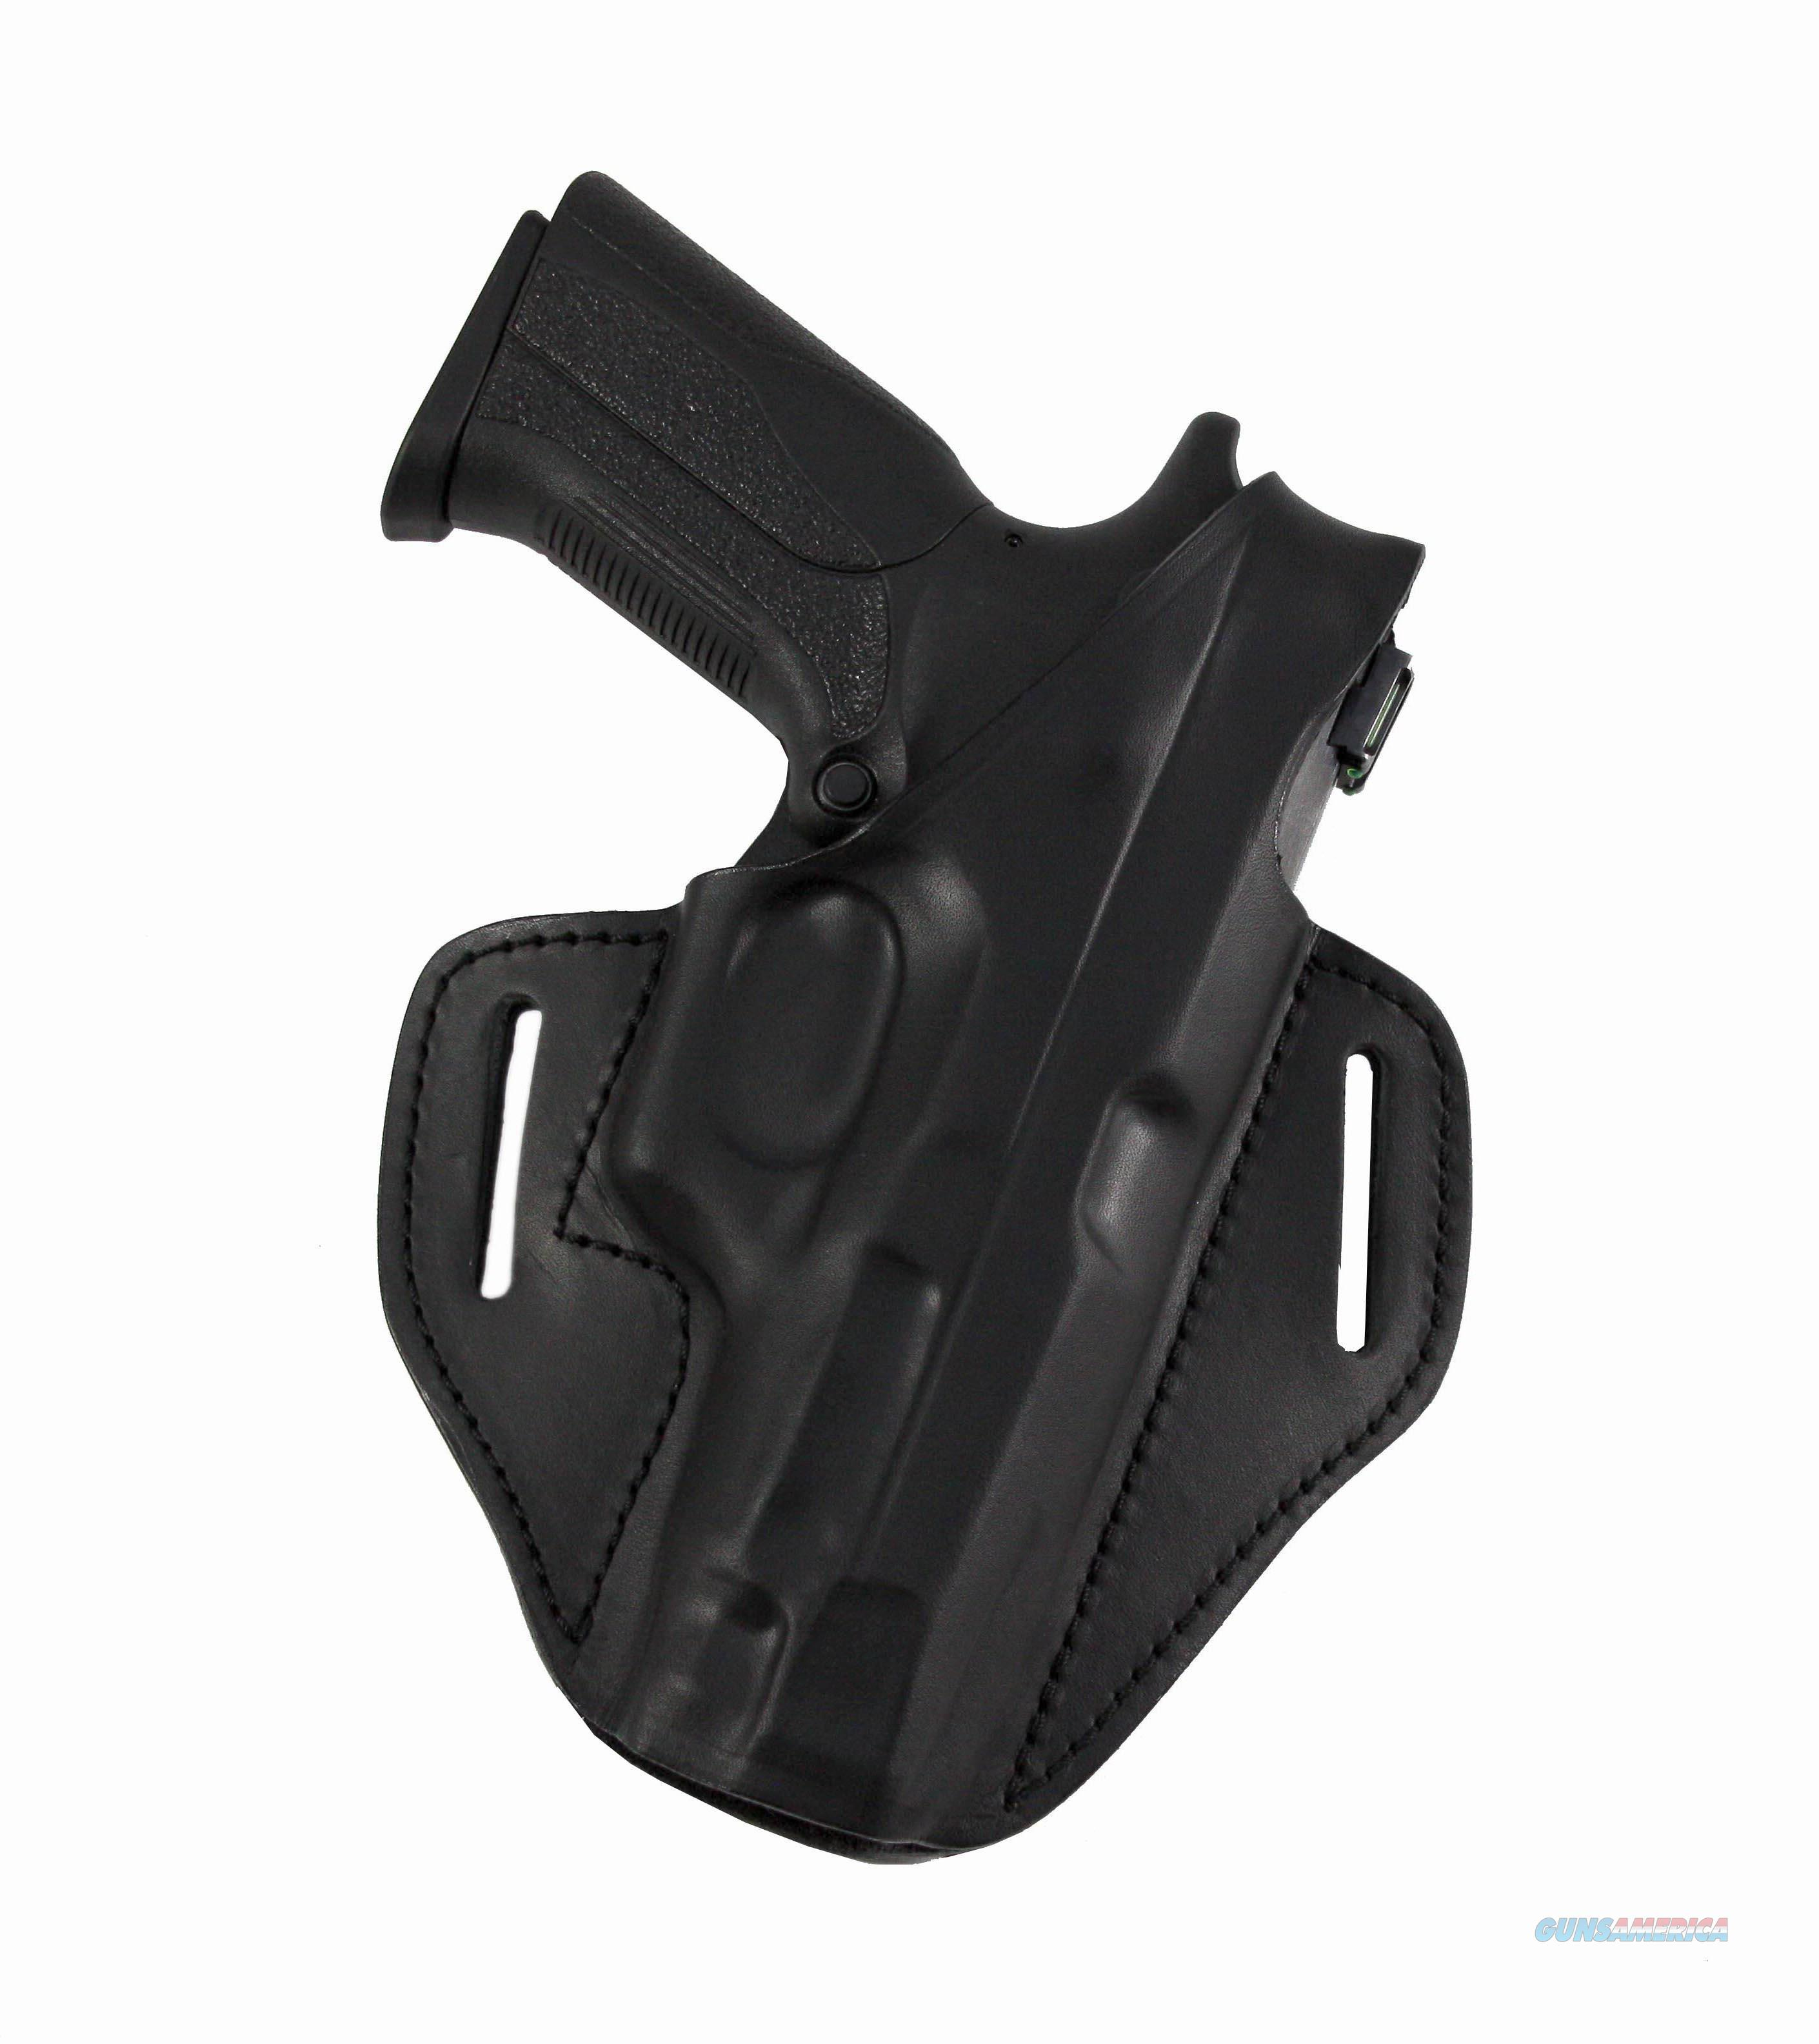 Leather Belt Holster Heckler & Koch USP 9mm  Non-Guns > Holsters and Gunleather > Concealed Carry